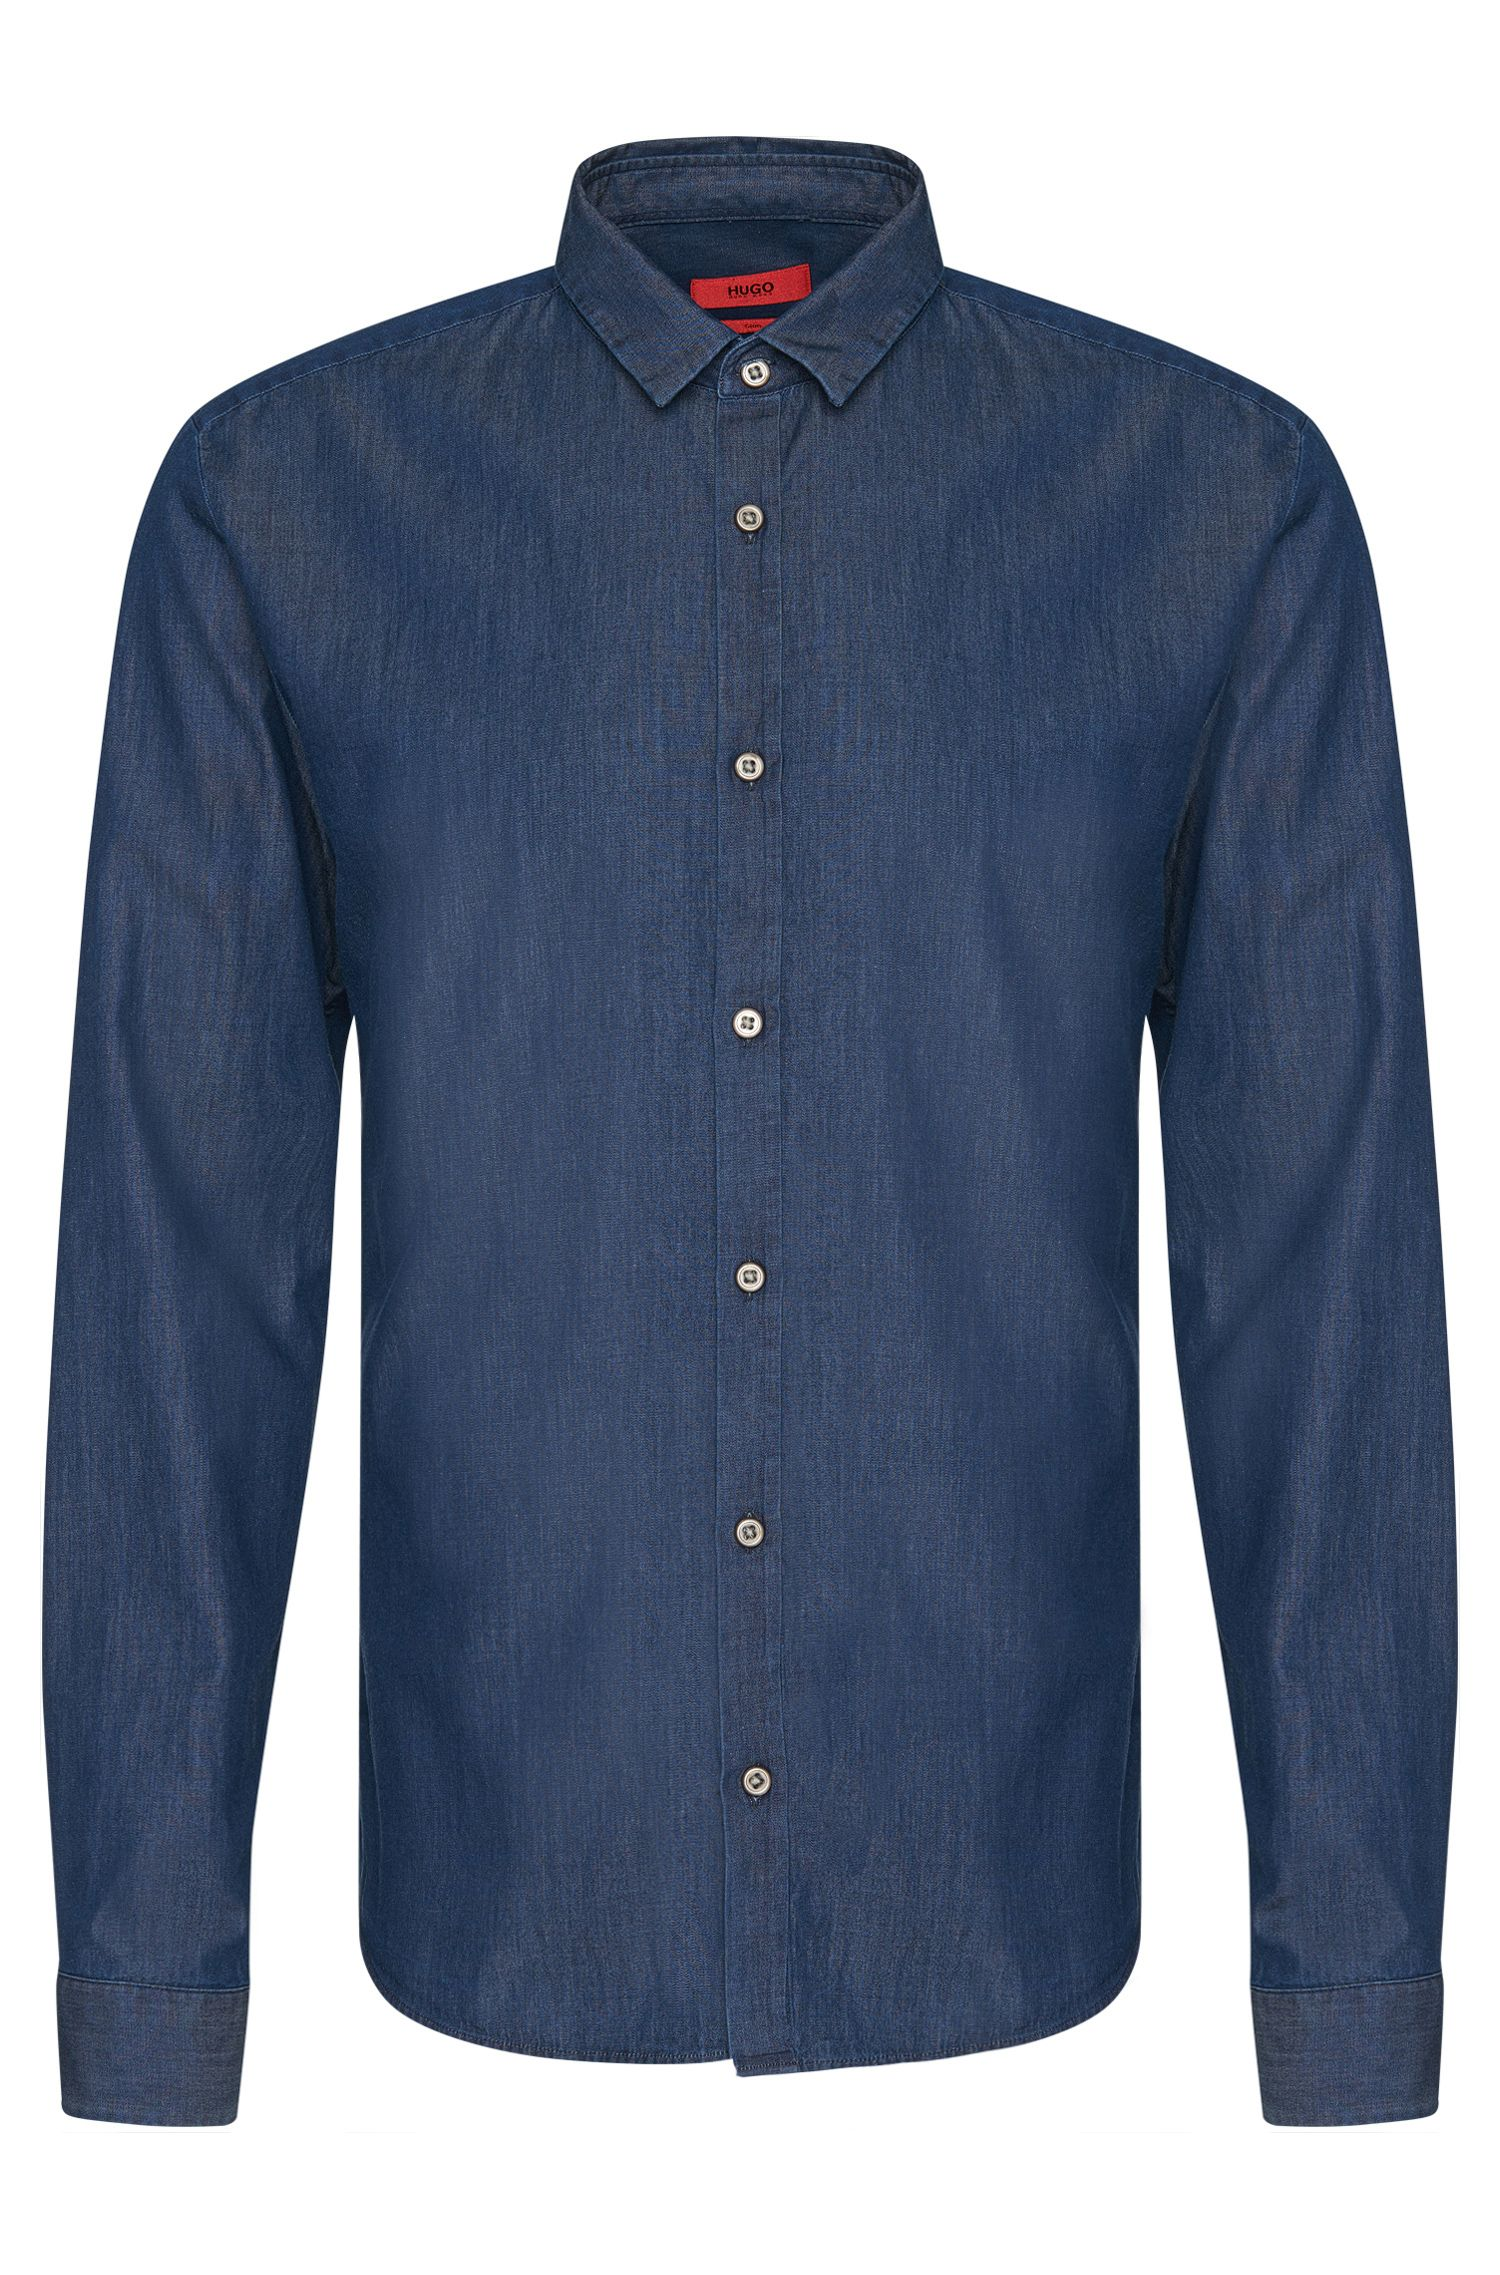 Chemise Slim Fit en coton au look denim : « Ero3 »